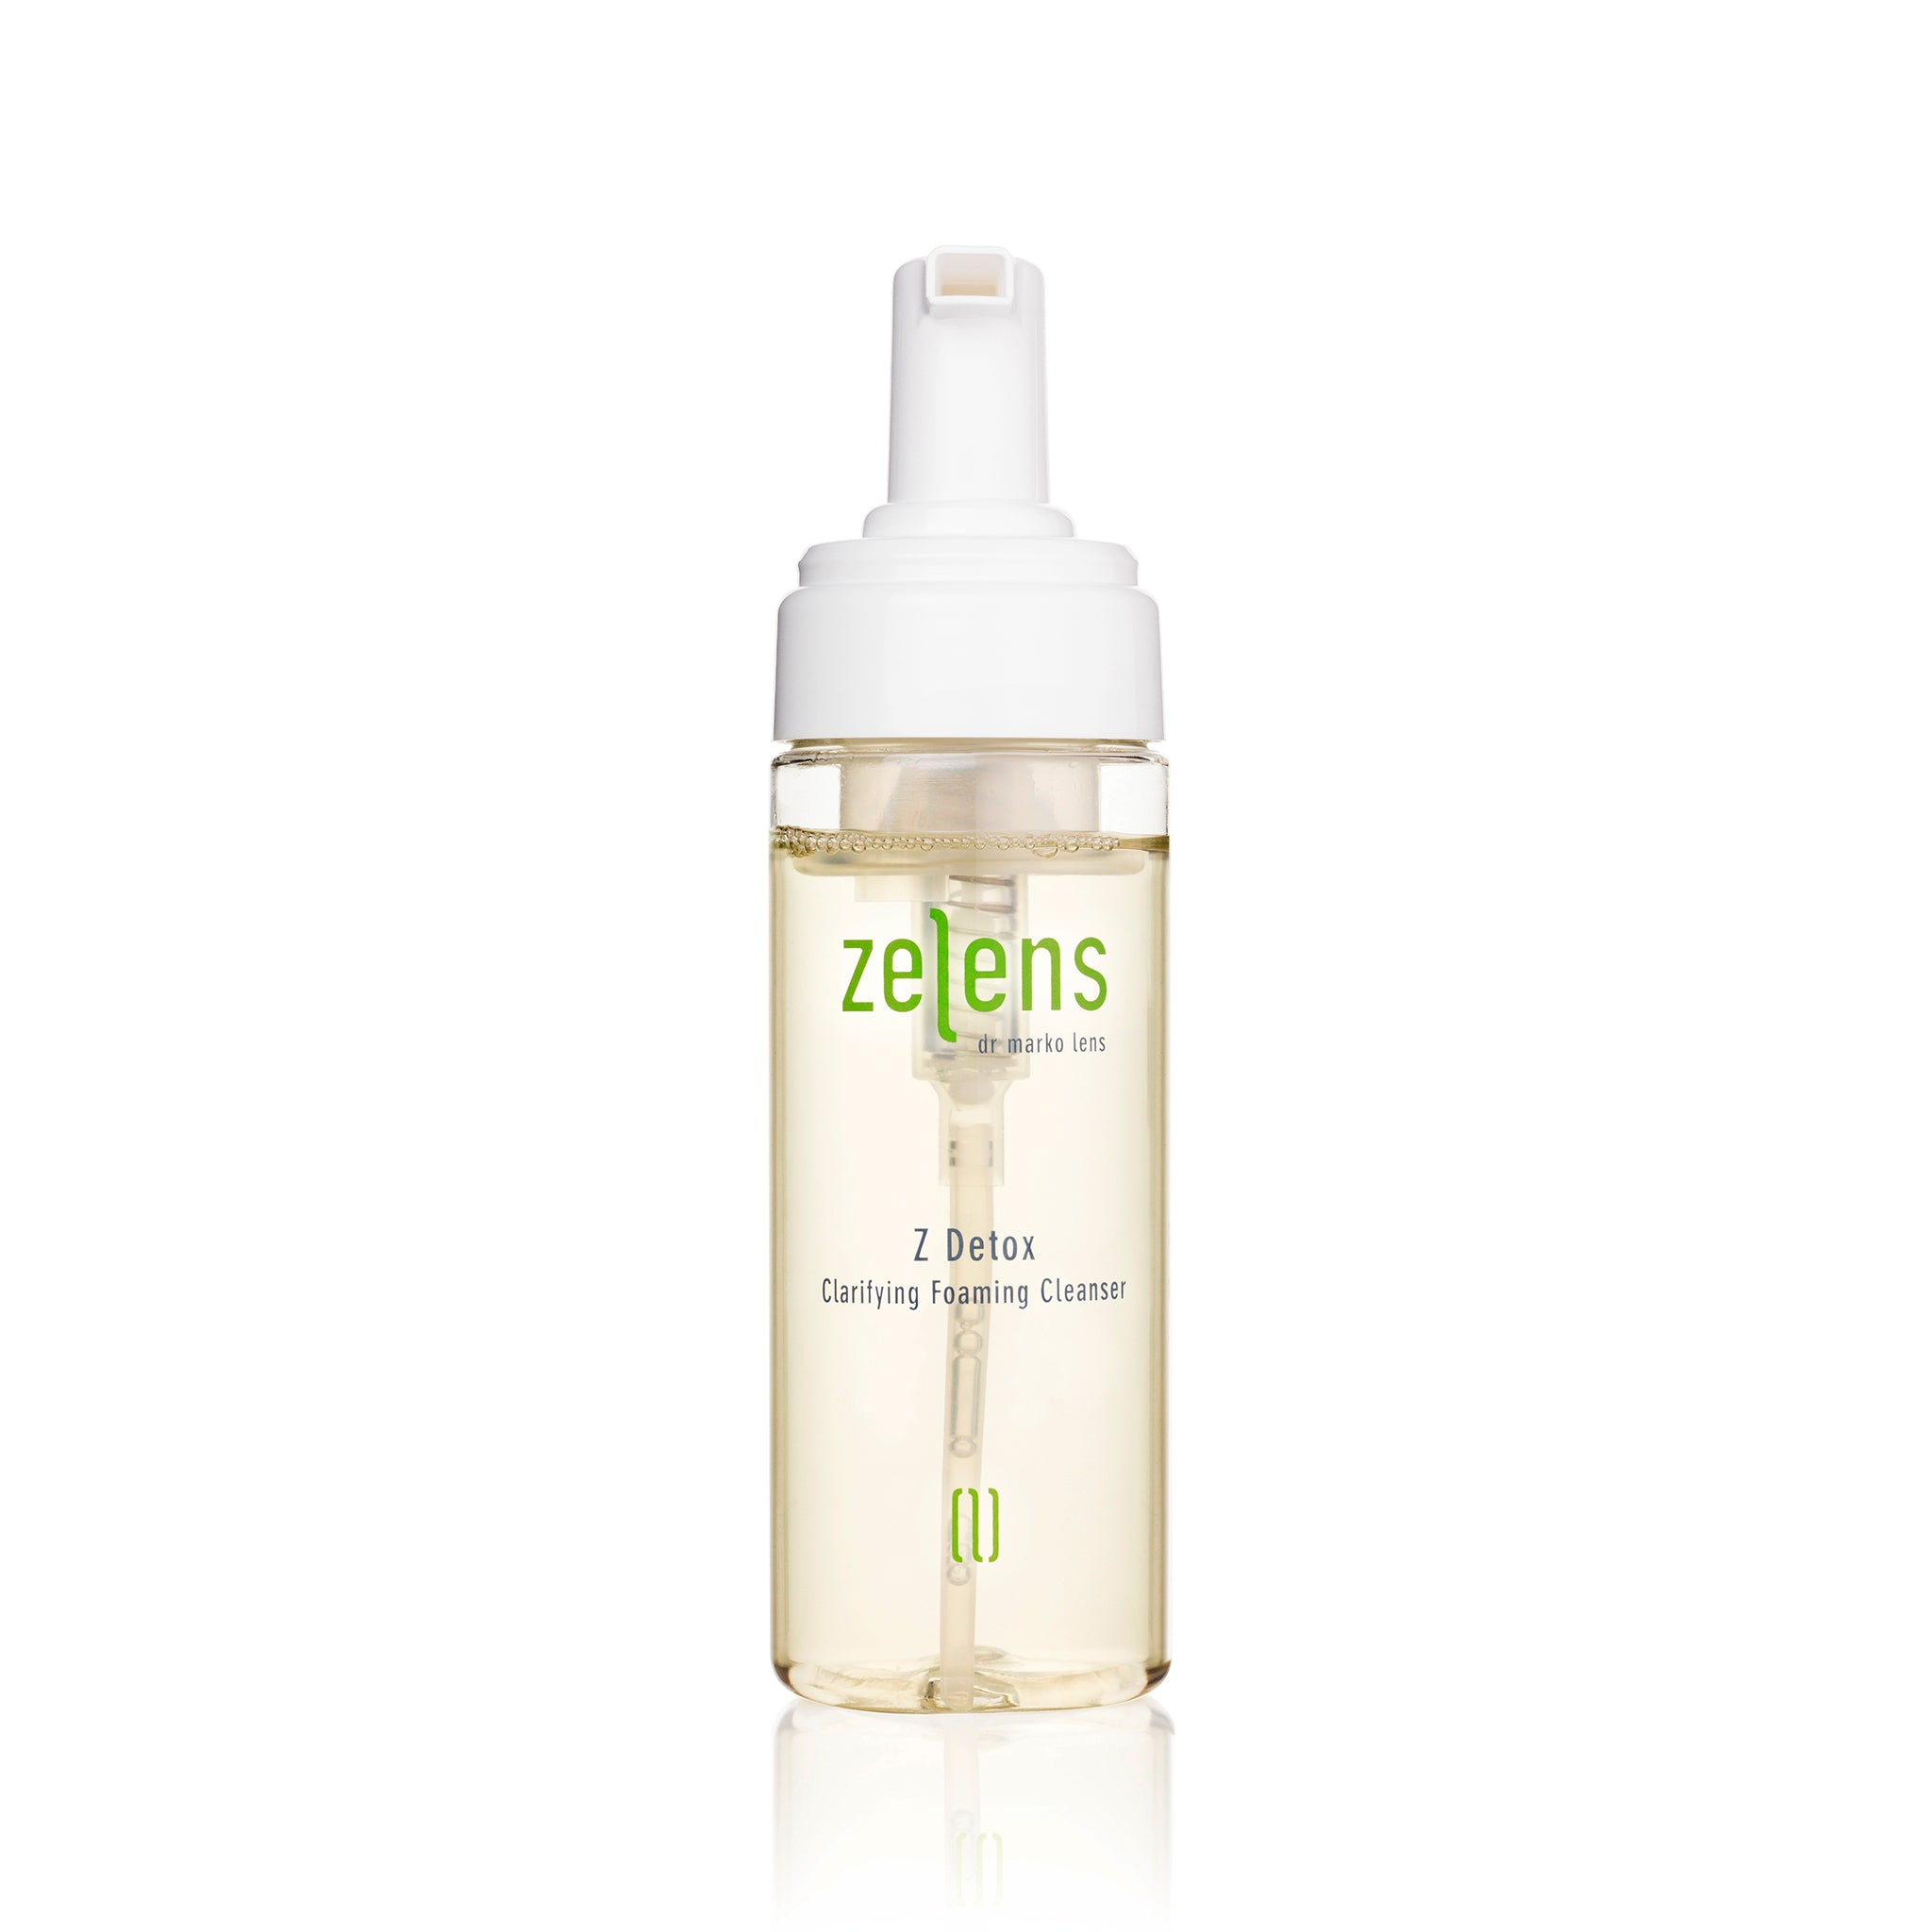 Z-Detox Clarifying Foaming Cleanser